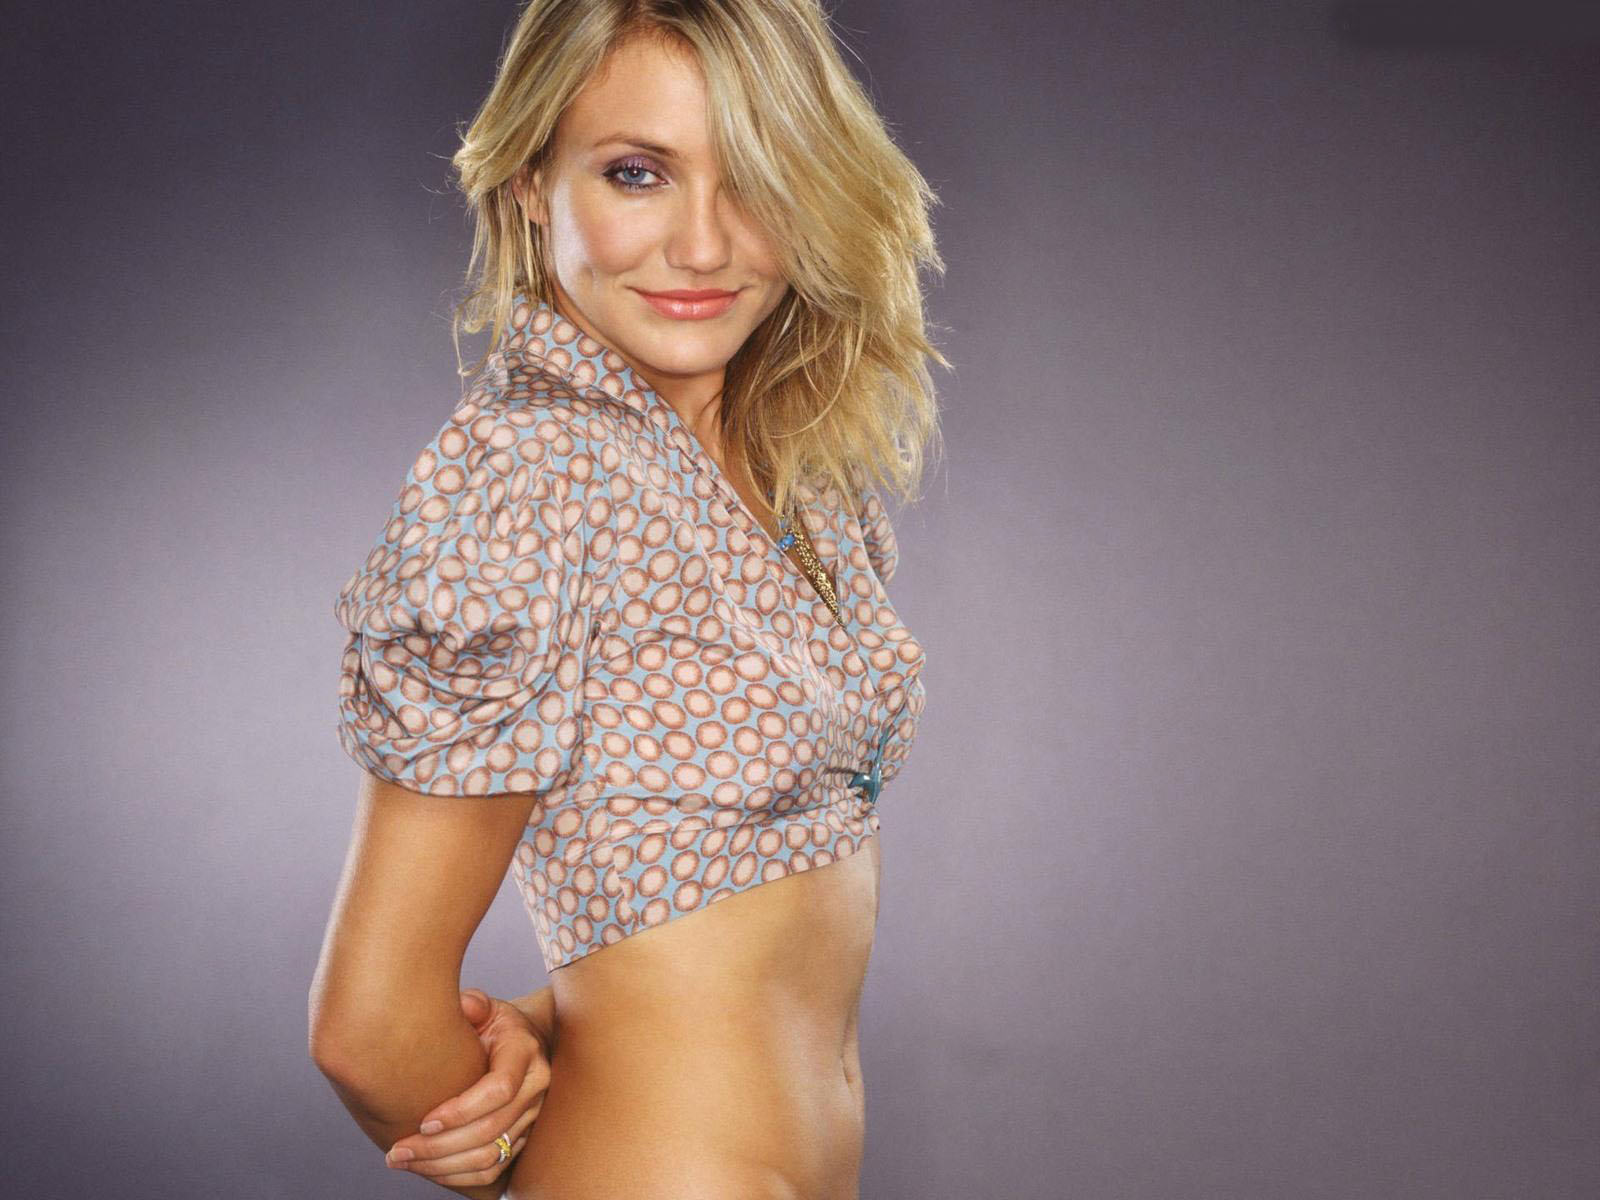 cameron diaz - photo #20